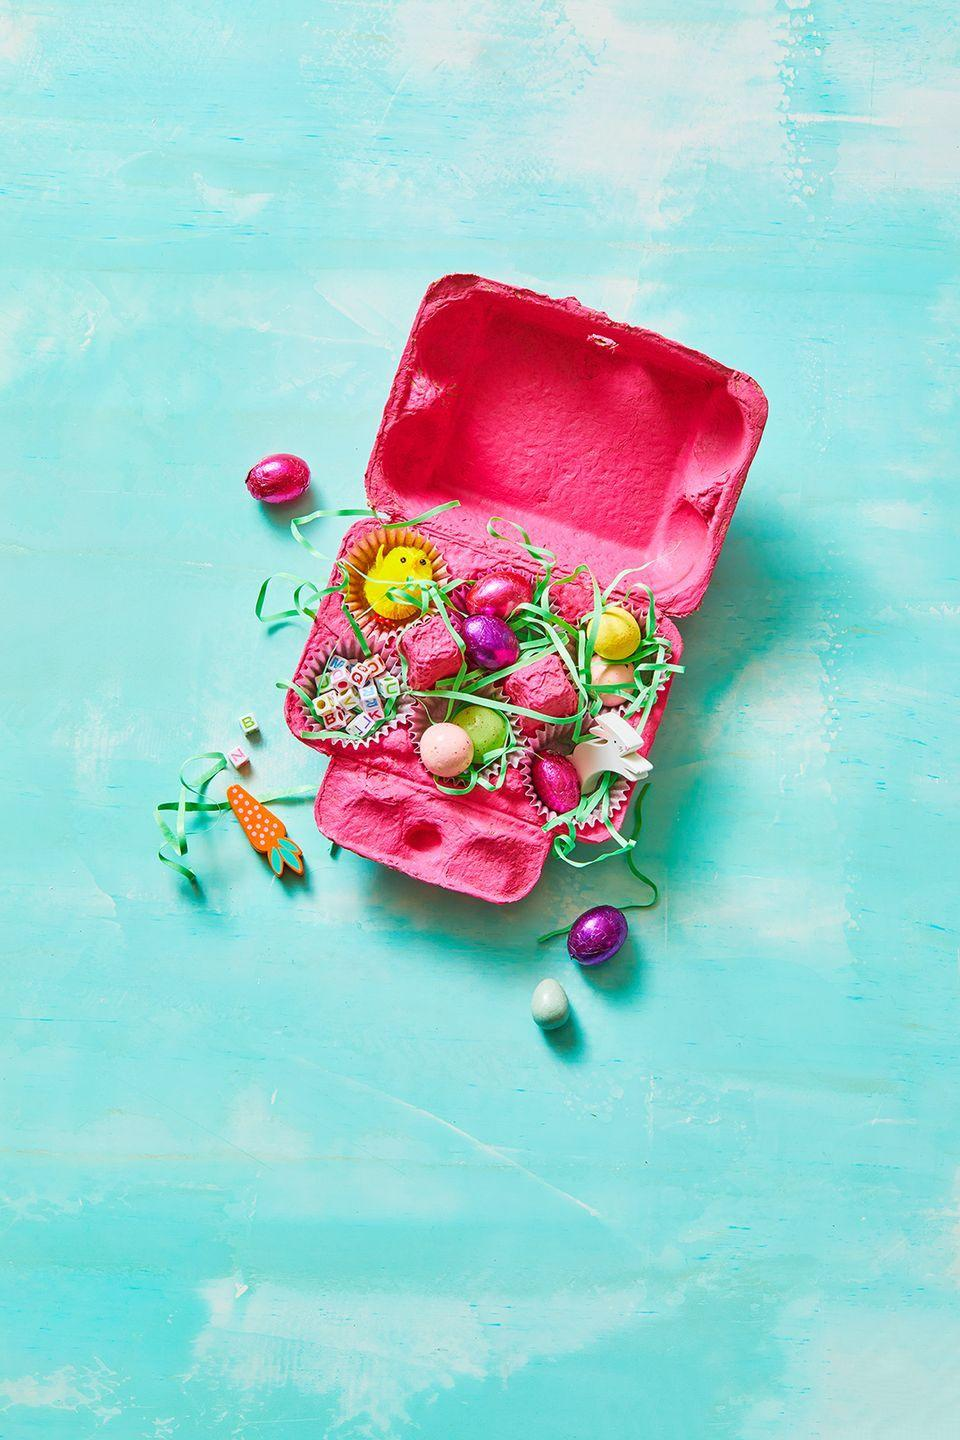 <p>Lean into the spirit of the season by painting an old egg carton with craft paint and filling with holiday treats. Add mini muffin liners and Easter grass inside each egg slot, so loose jelly beans and chocolate eggs stay put. </p>